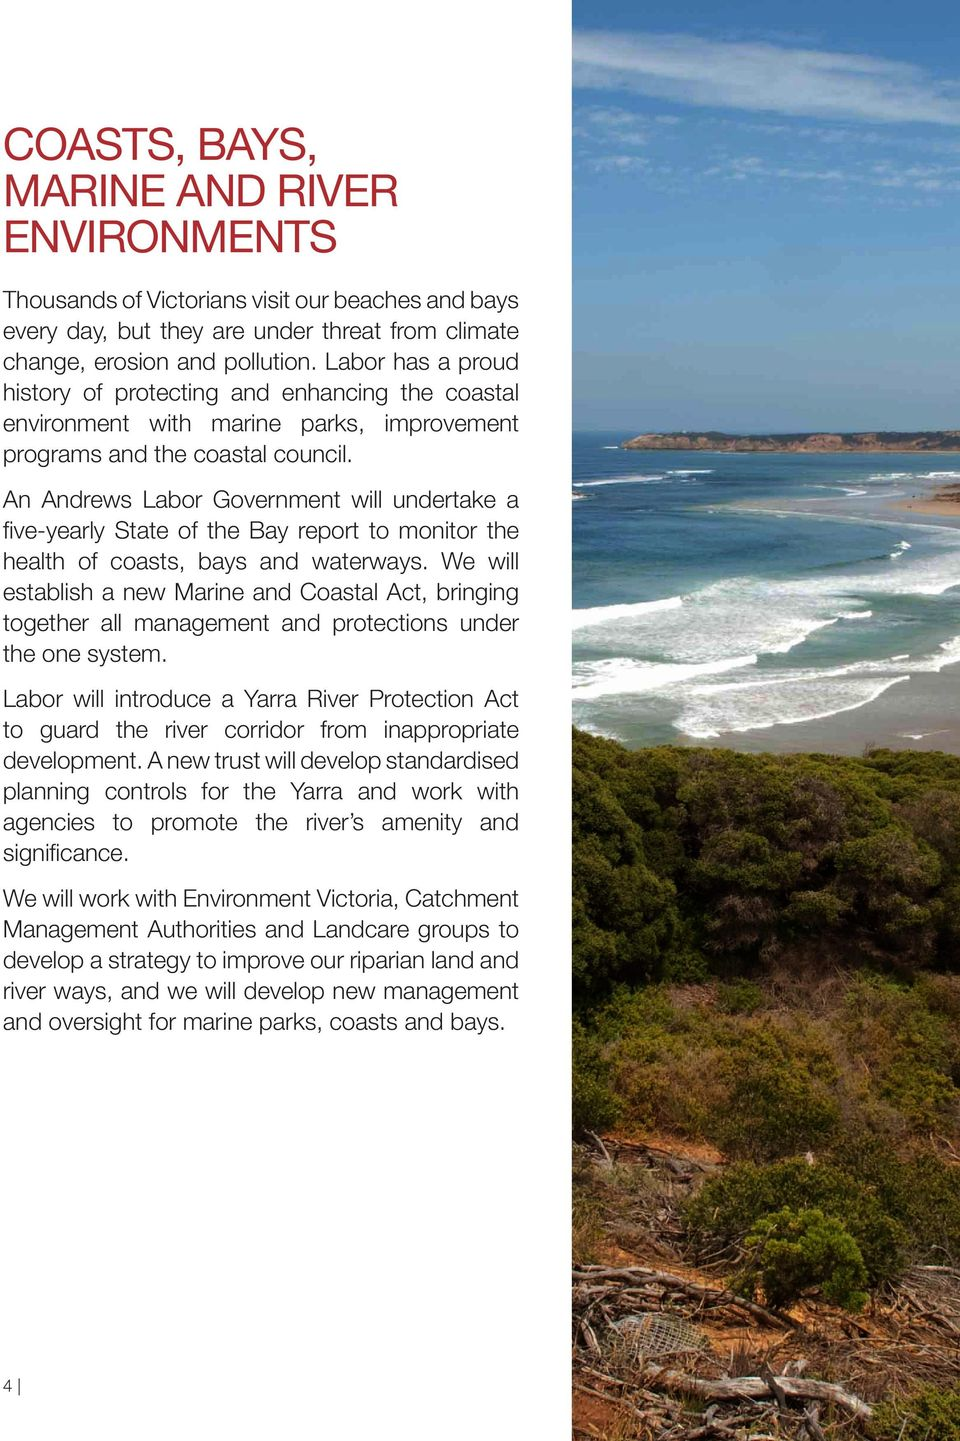 An Andrews Labor Government will undertake a five-yearly State of the Bay report to monitor the health of coasts, bays and waterways.